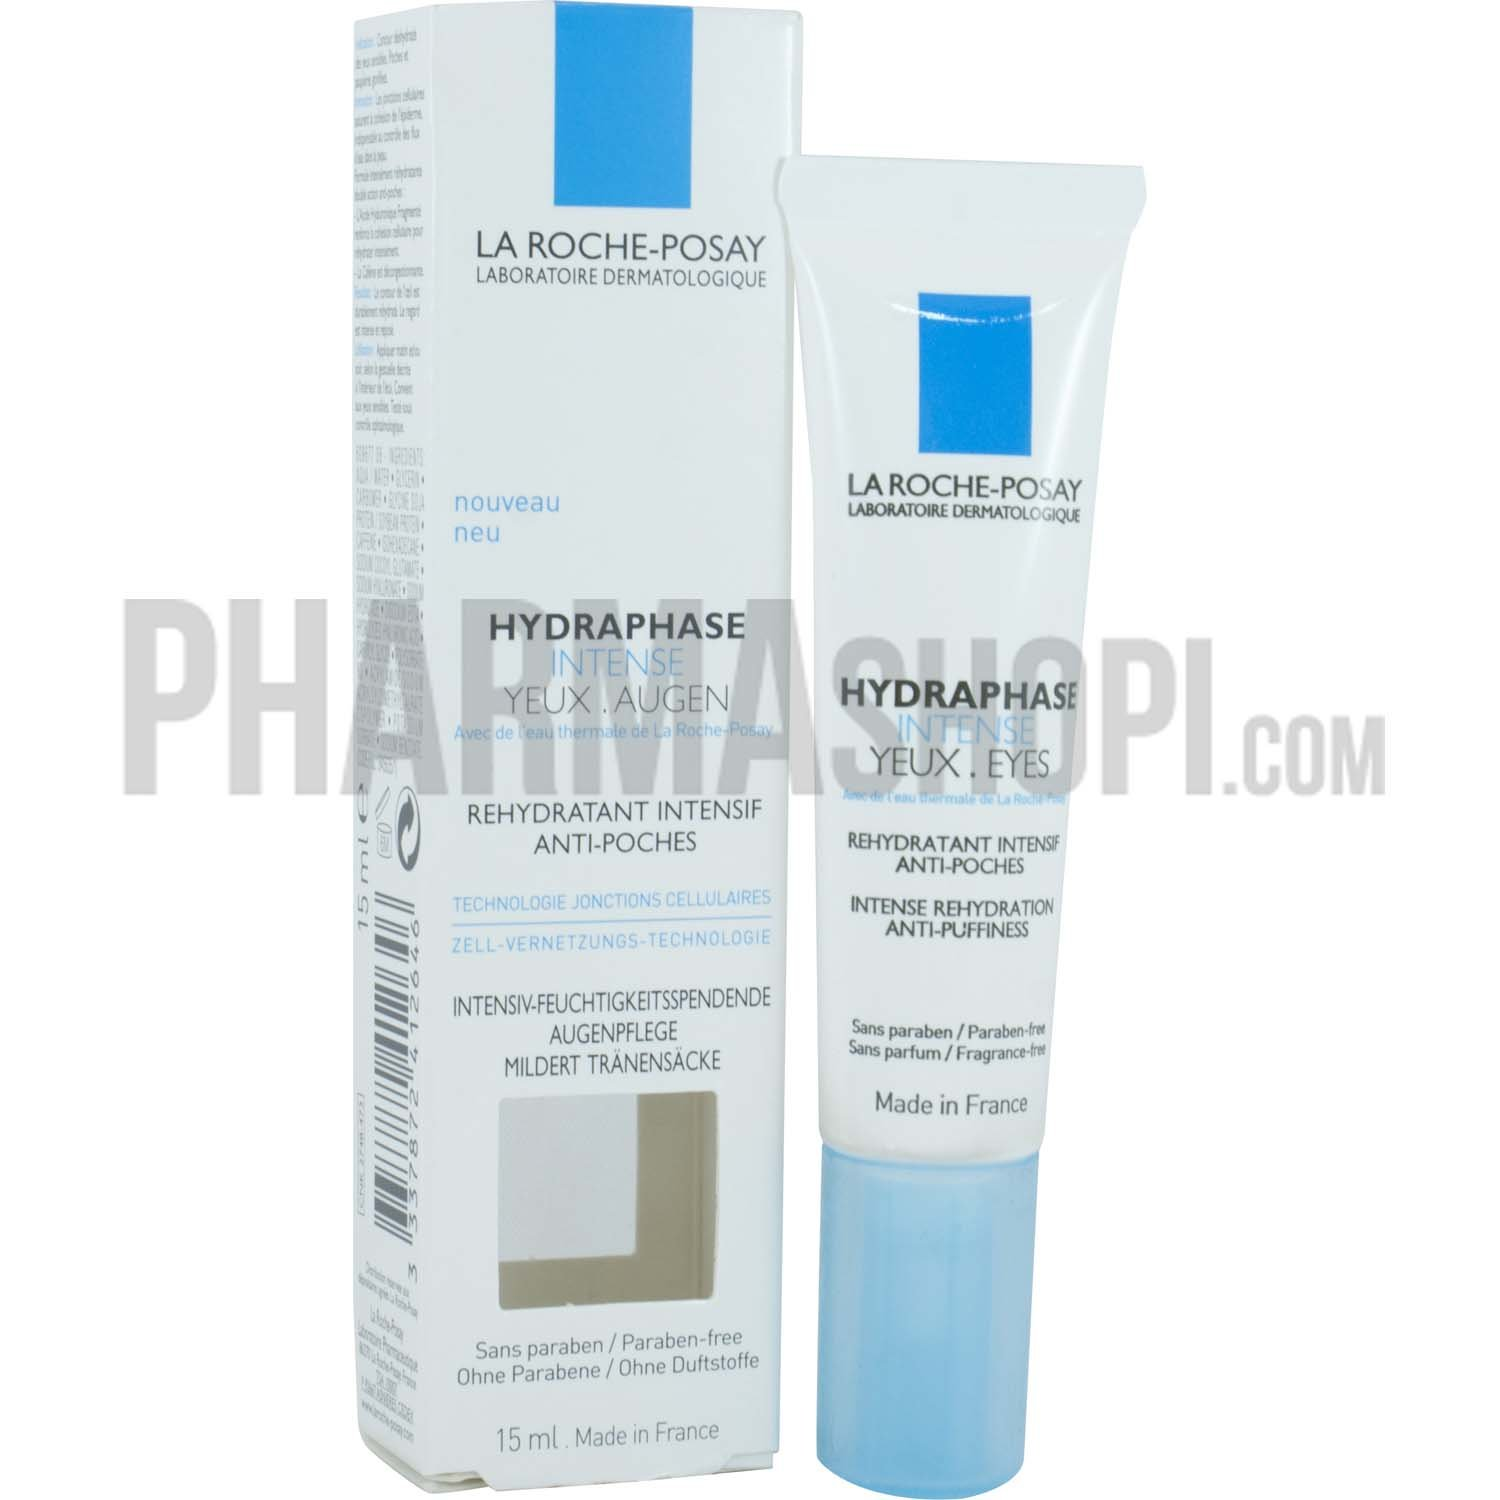 la roche posay hydraphase intense yeux r hydratant intensif anti poches la roche posay tube. Black Bedroom Furniture Sets. Home Design Ideas